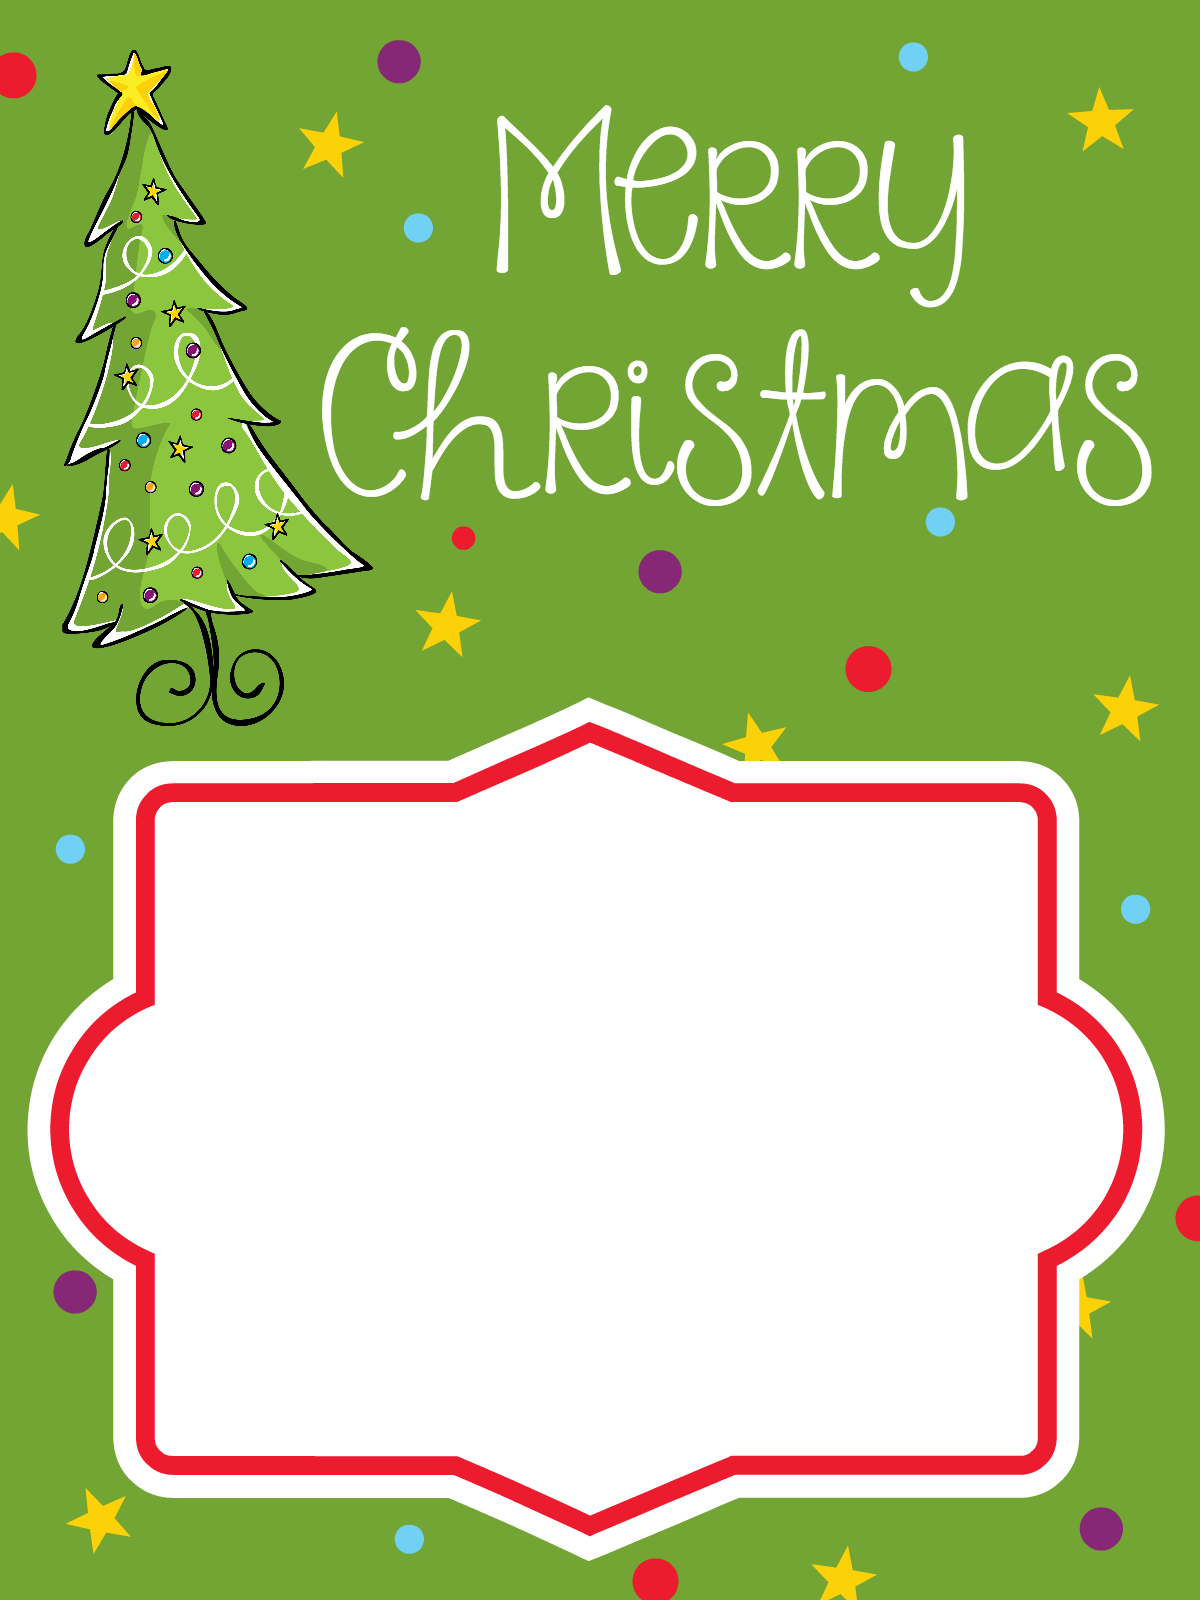 It's just an image of Hilaire Printable Christmas Cards